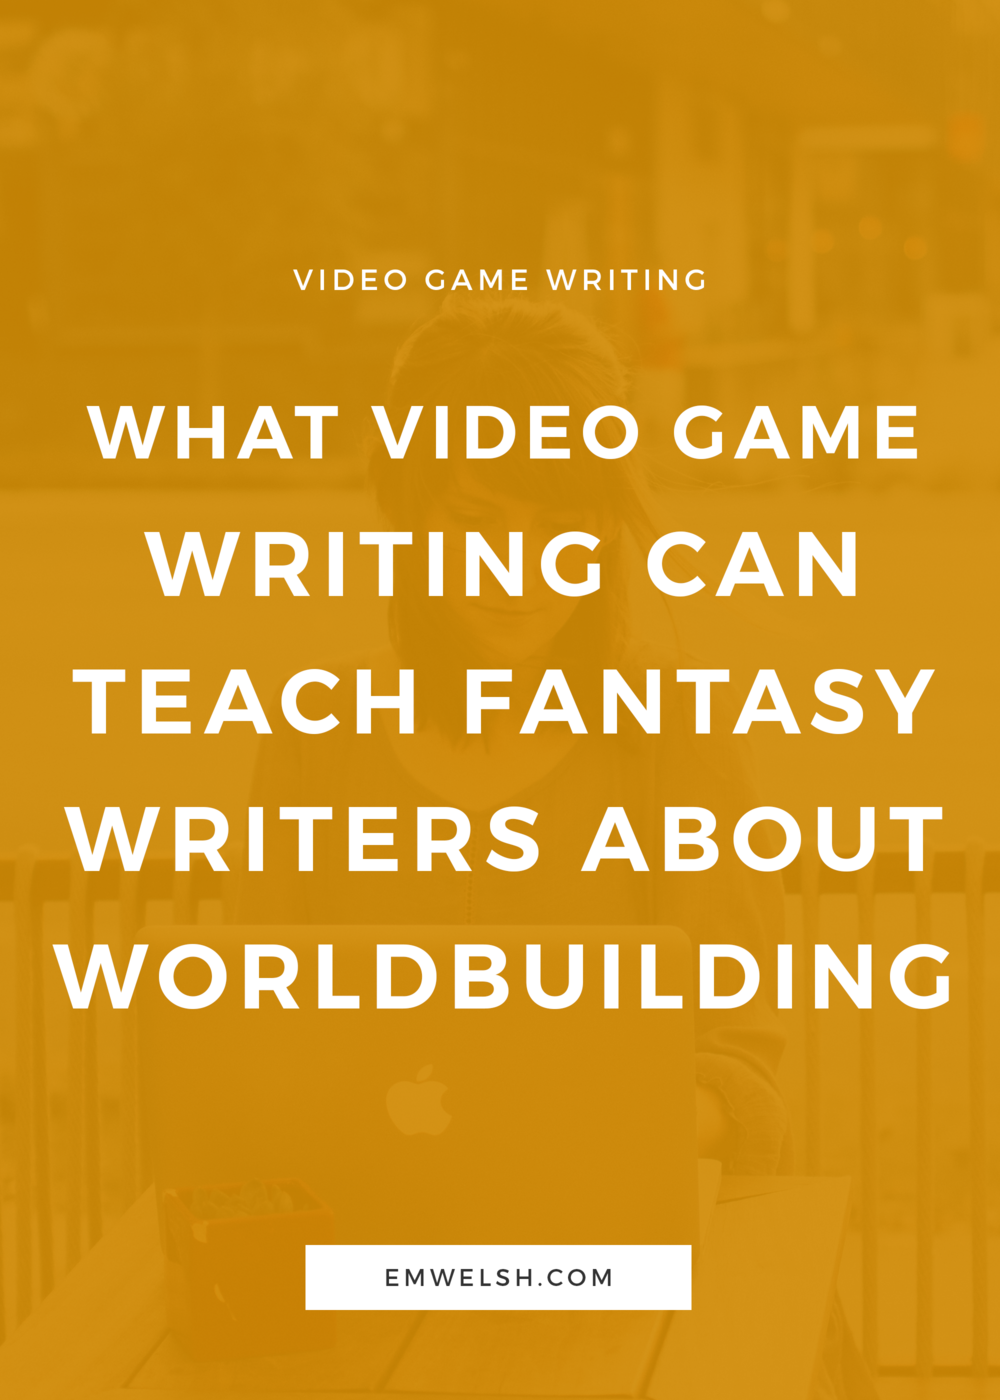 Video_Game_Writing_Fantasy_Writers_Worldbuilding.png